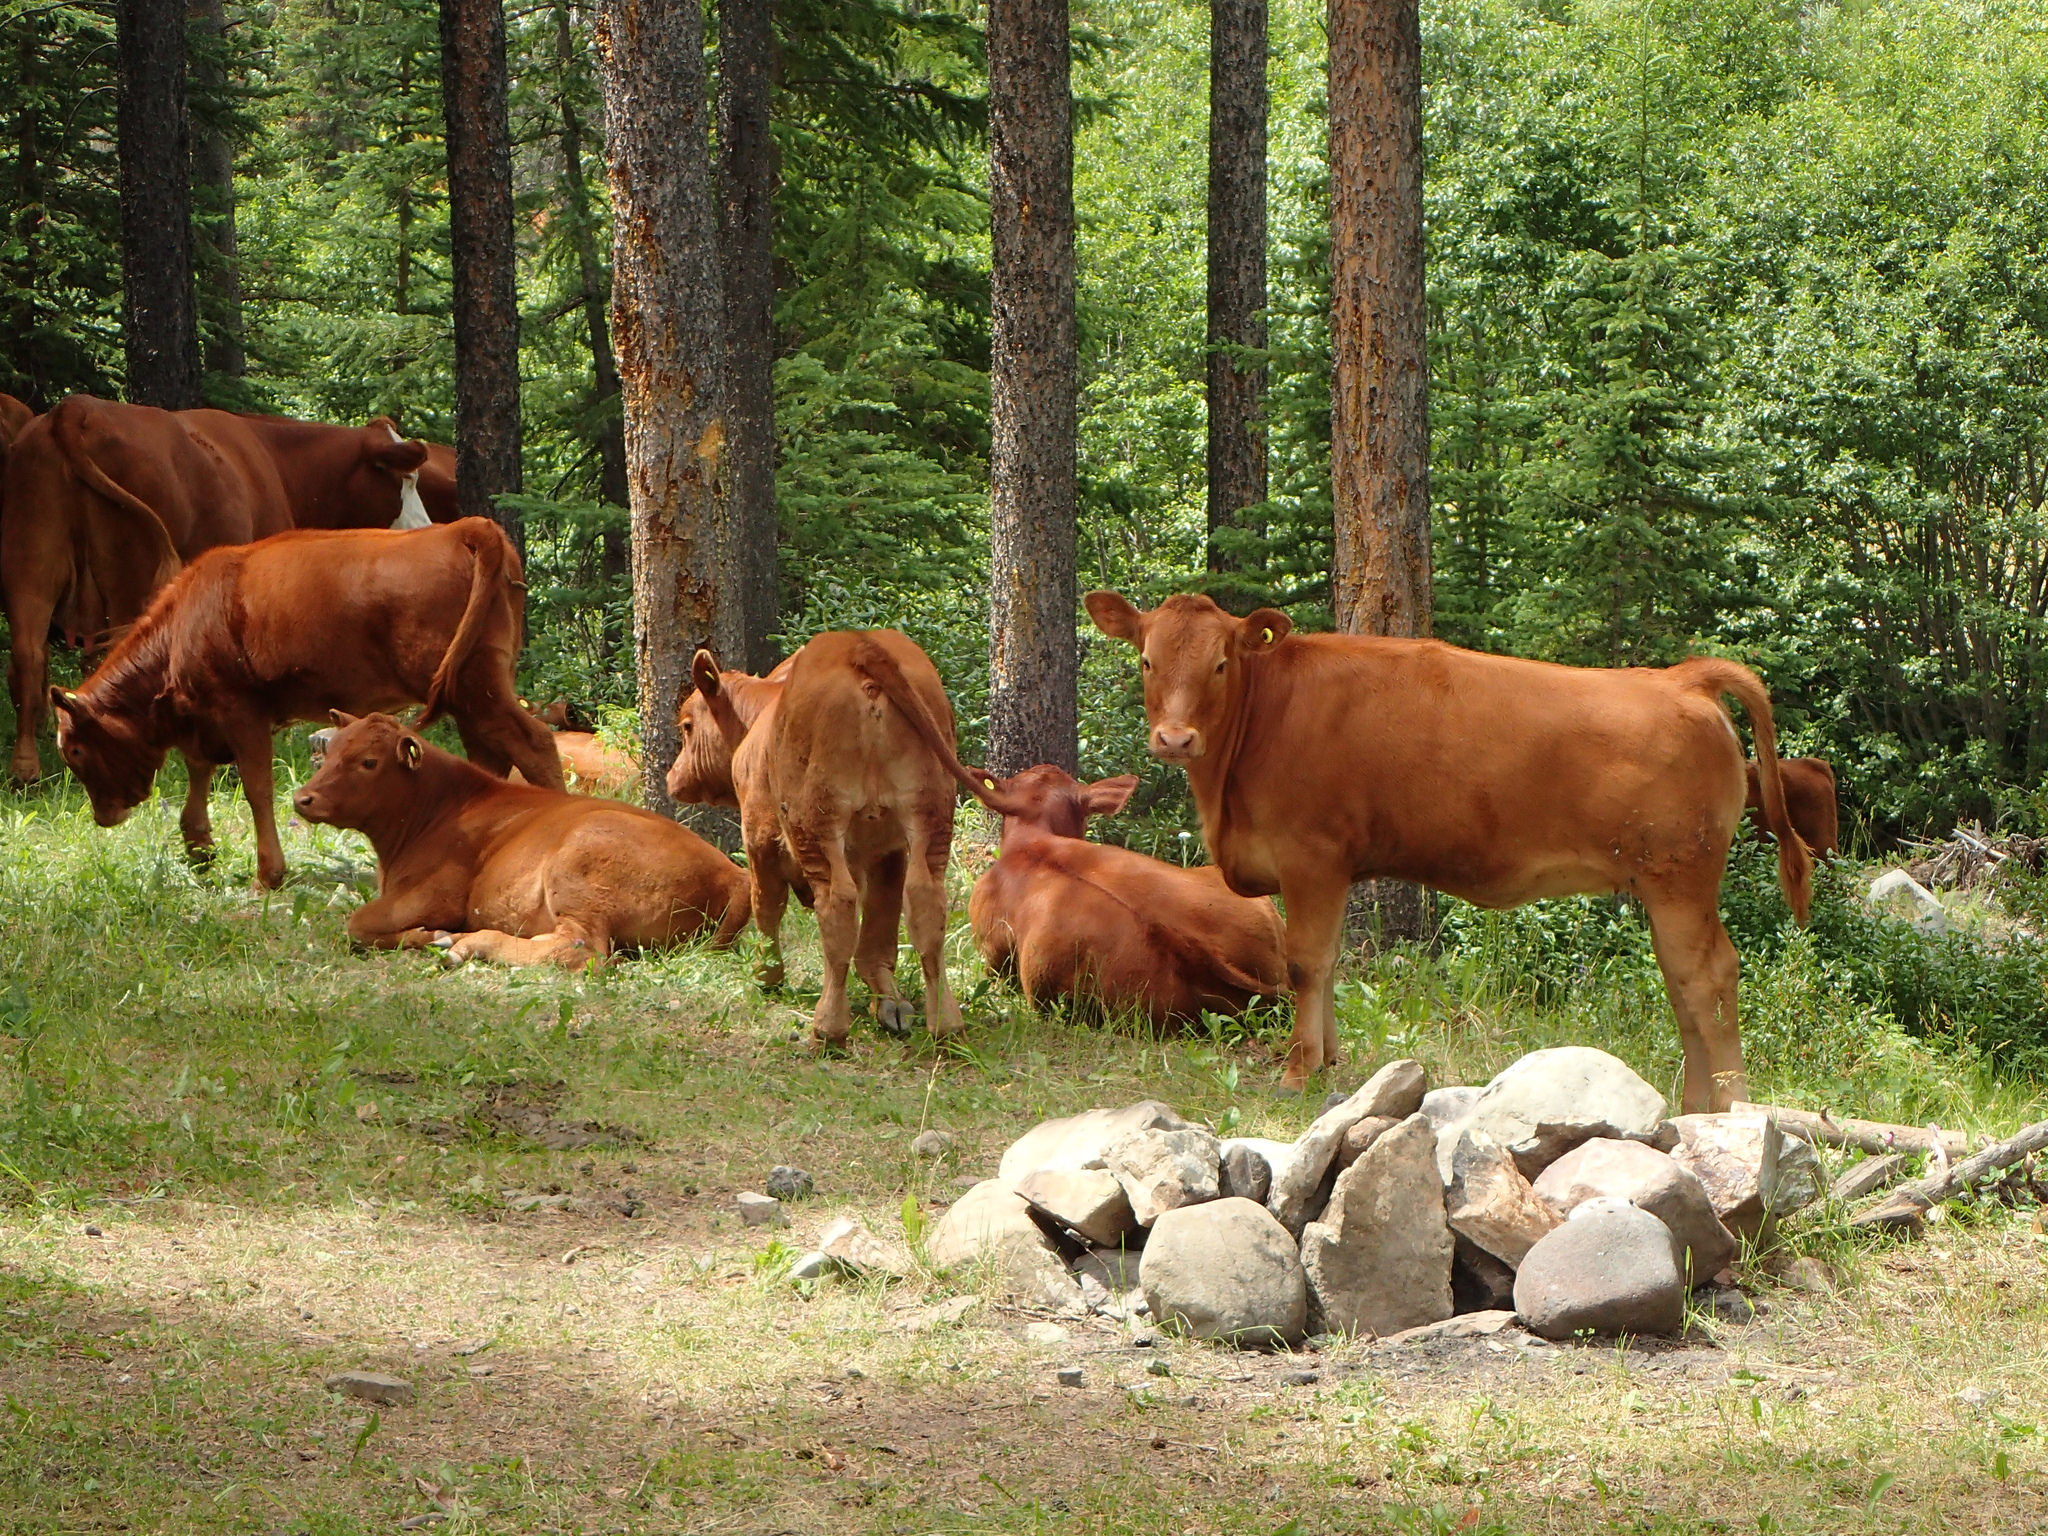 Photo credit: Thomas Porter Cattle grazing next to a random campsite in the Castle.